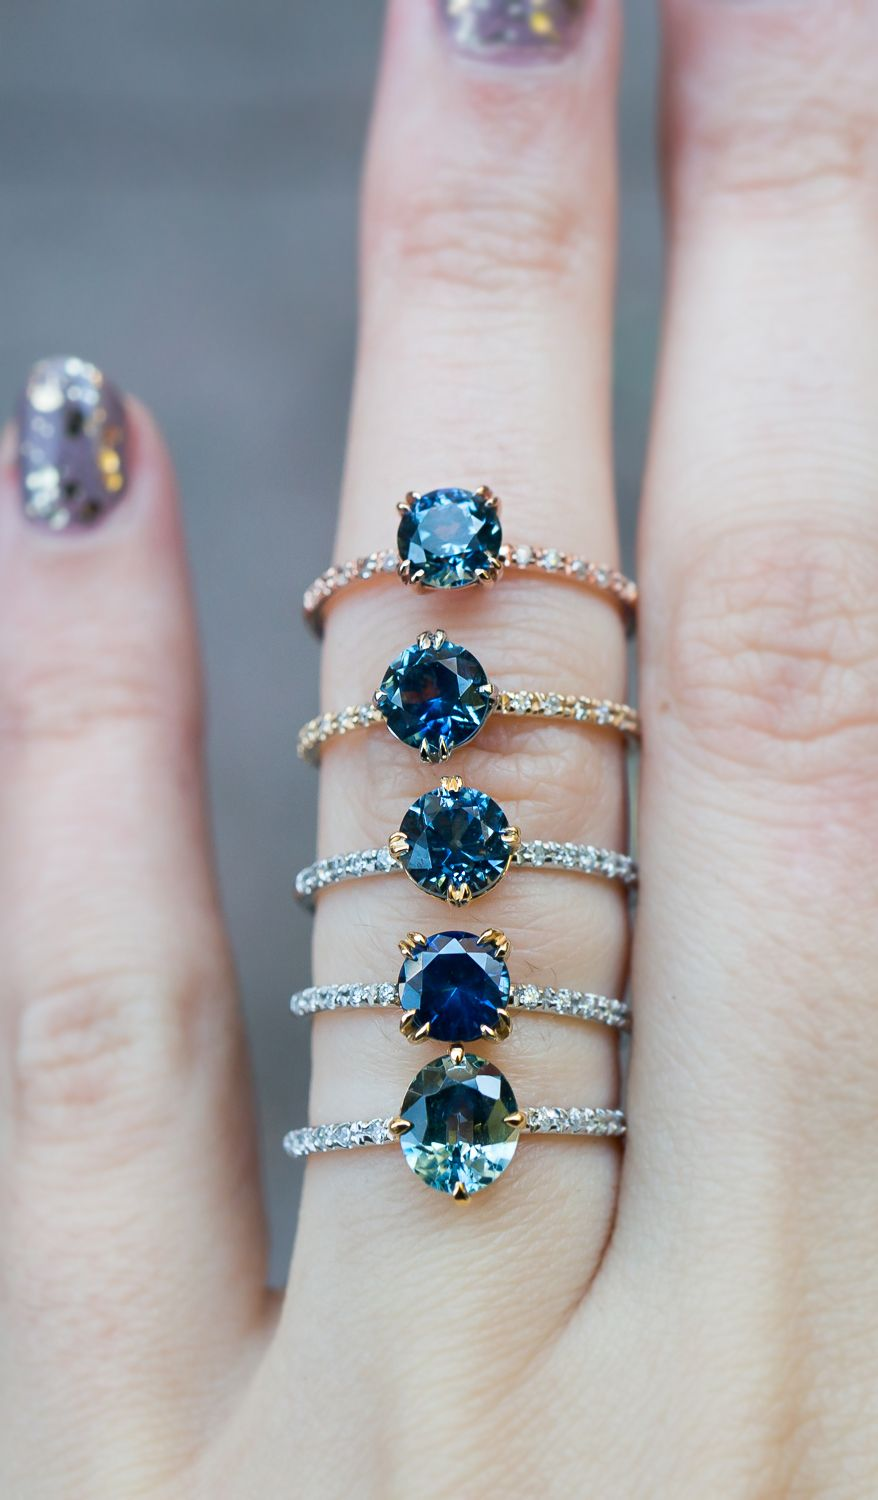 Vintage wedding rings new york - How To Keep Your Old Jewelry Looking Like New Sapphire Engagement